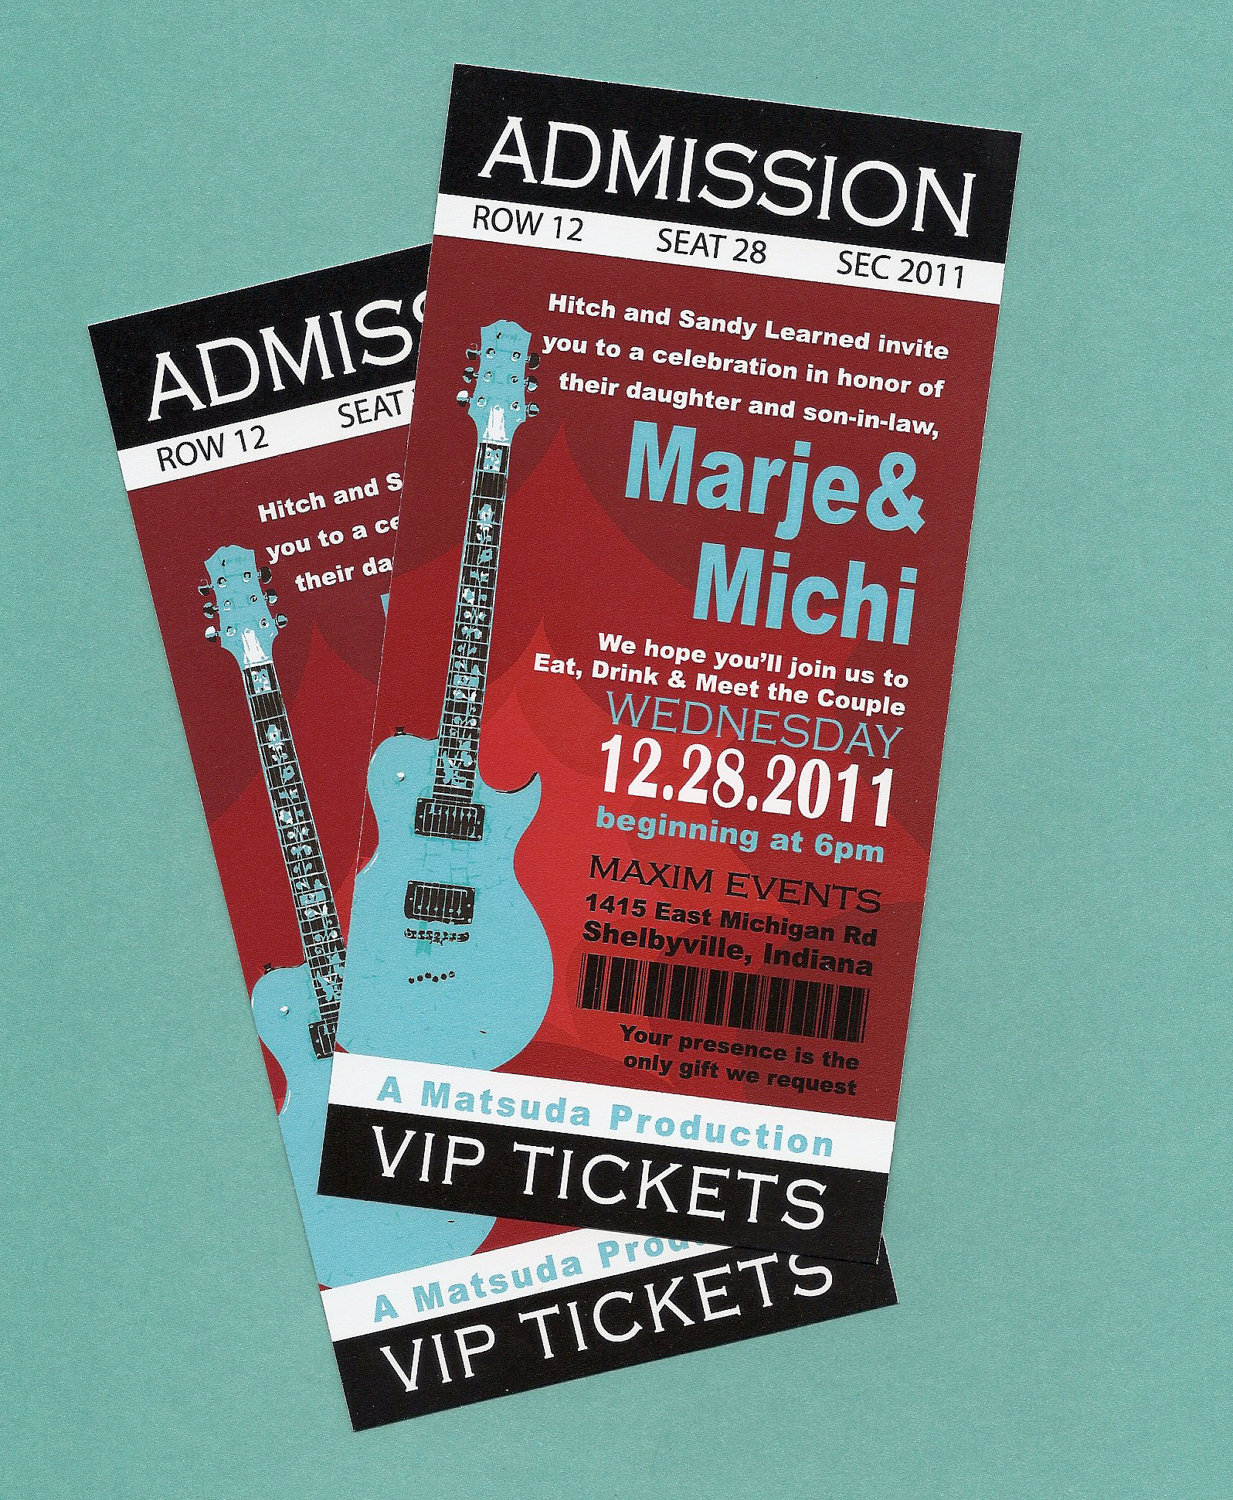 Concert Ticket Invitation  Concert Ticket Template Free